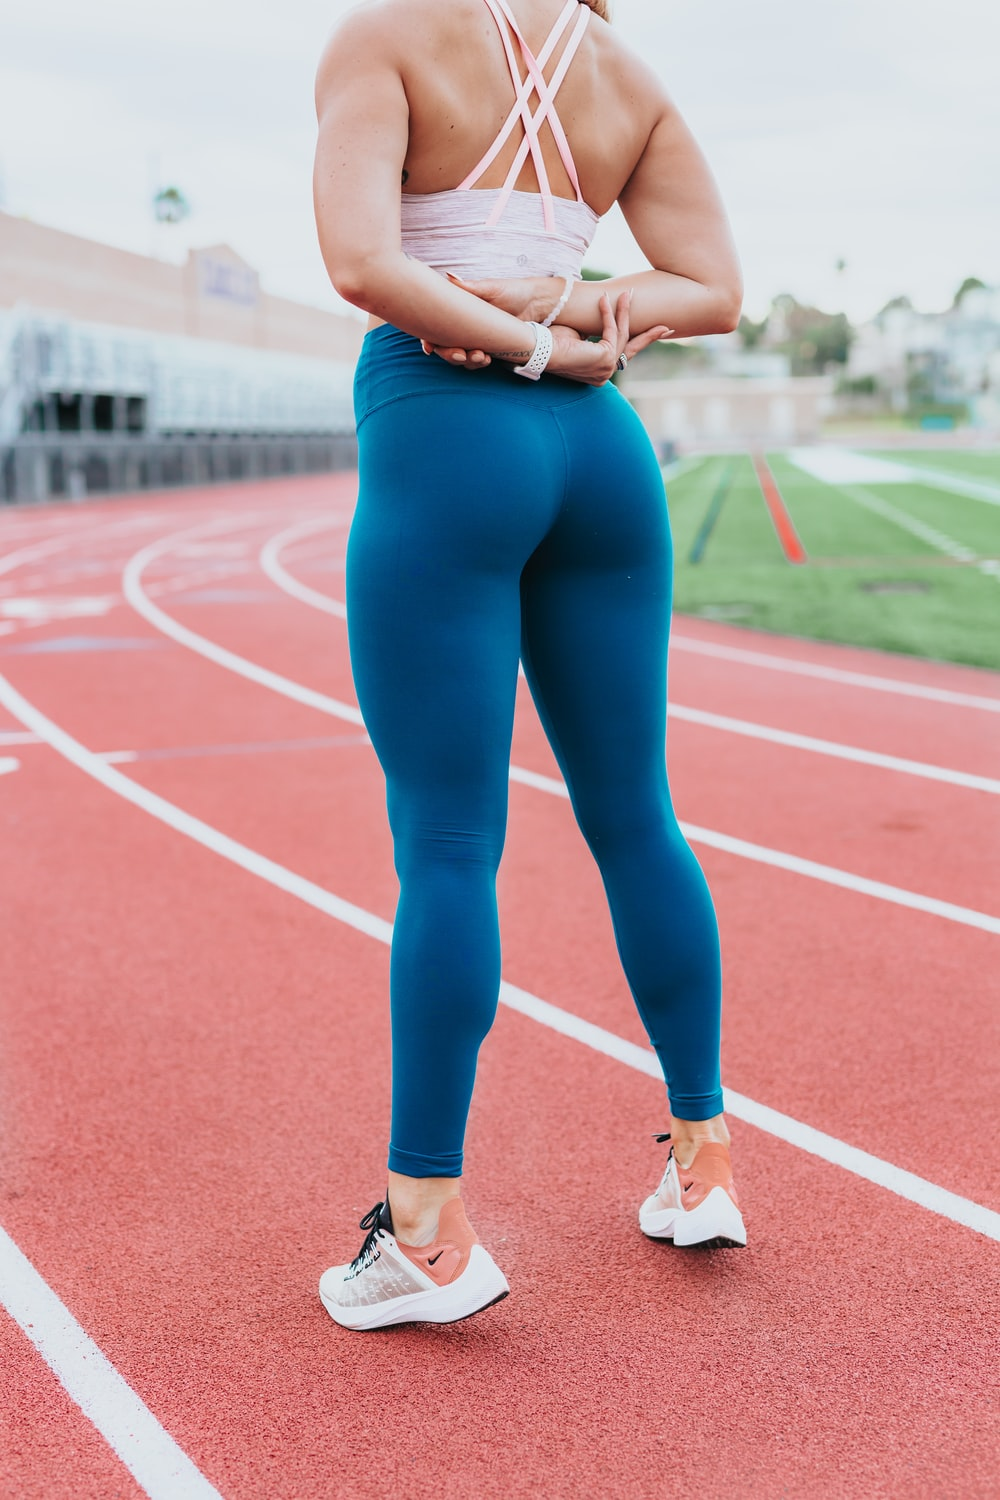 woman wearing blue pants standing on track during daytime